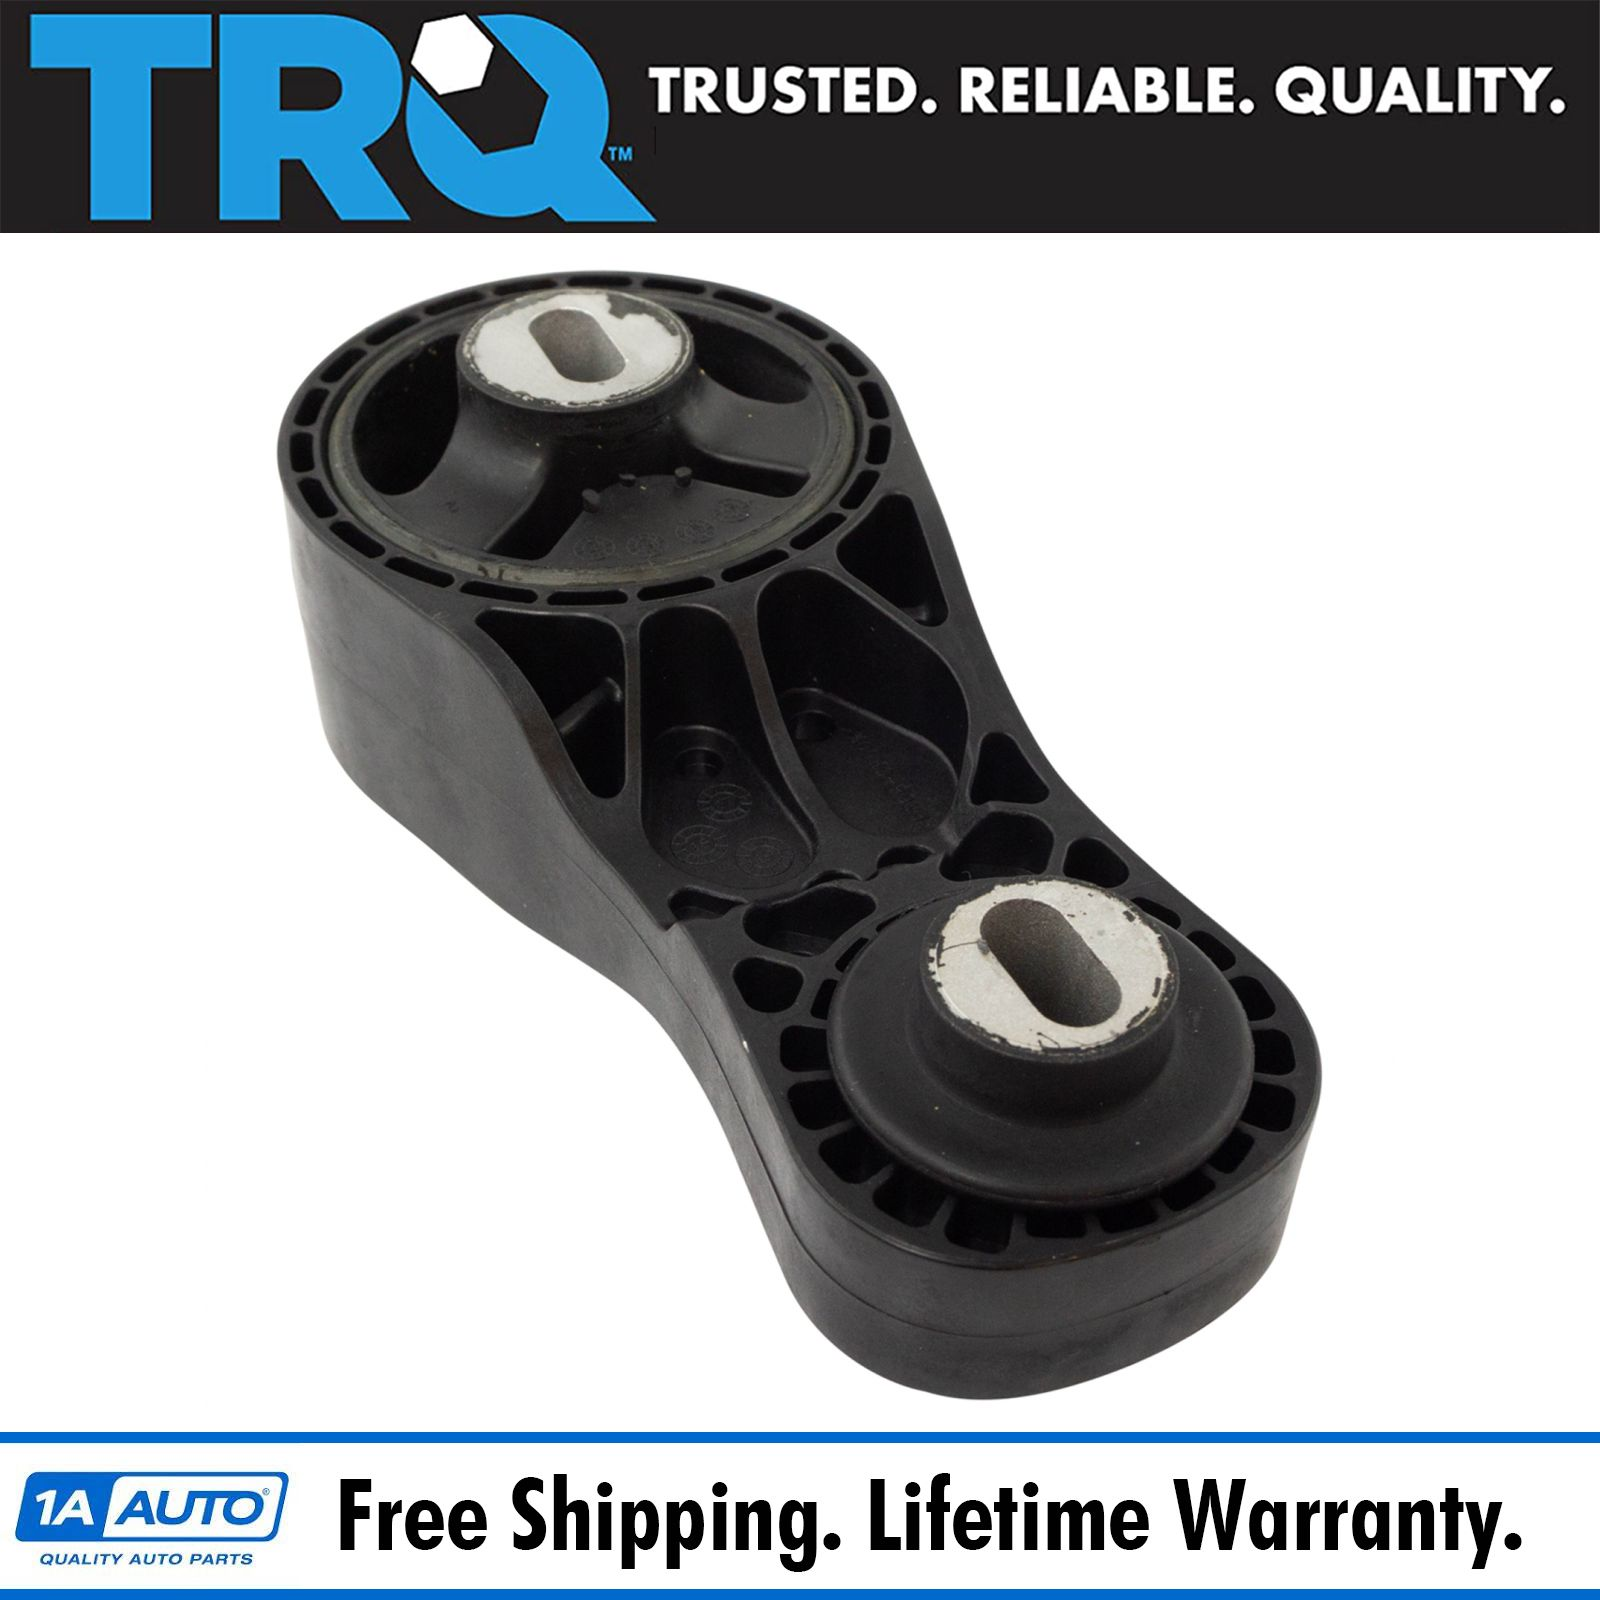 Transmission Mount for GMC ACADIA BUICK ENCLAVE SATURN SUV OUTLOOK TRAVERSE